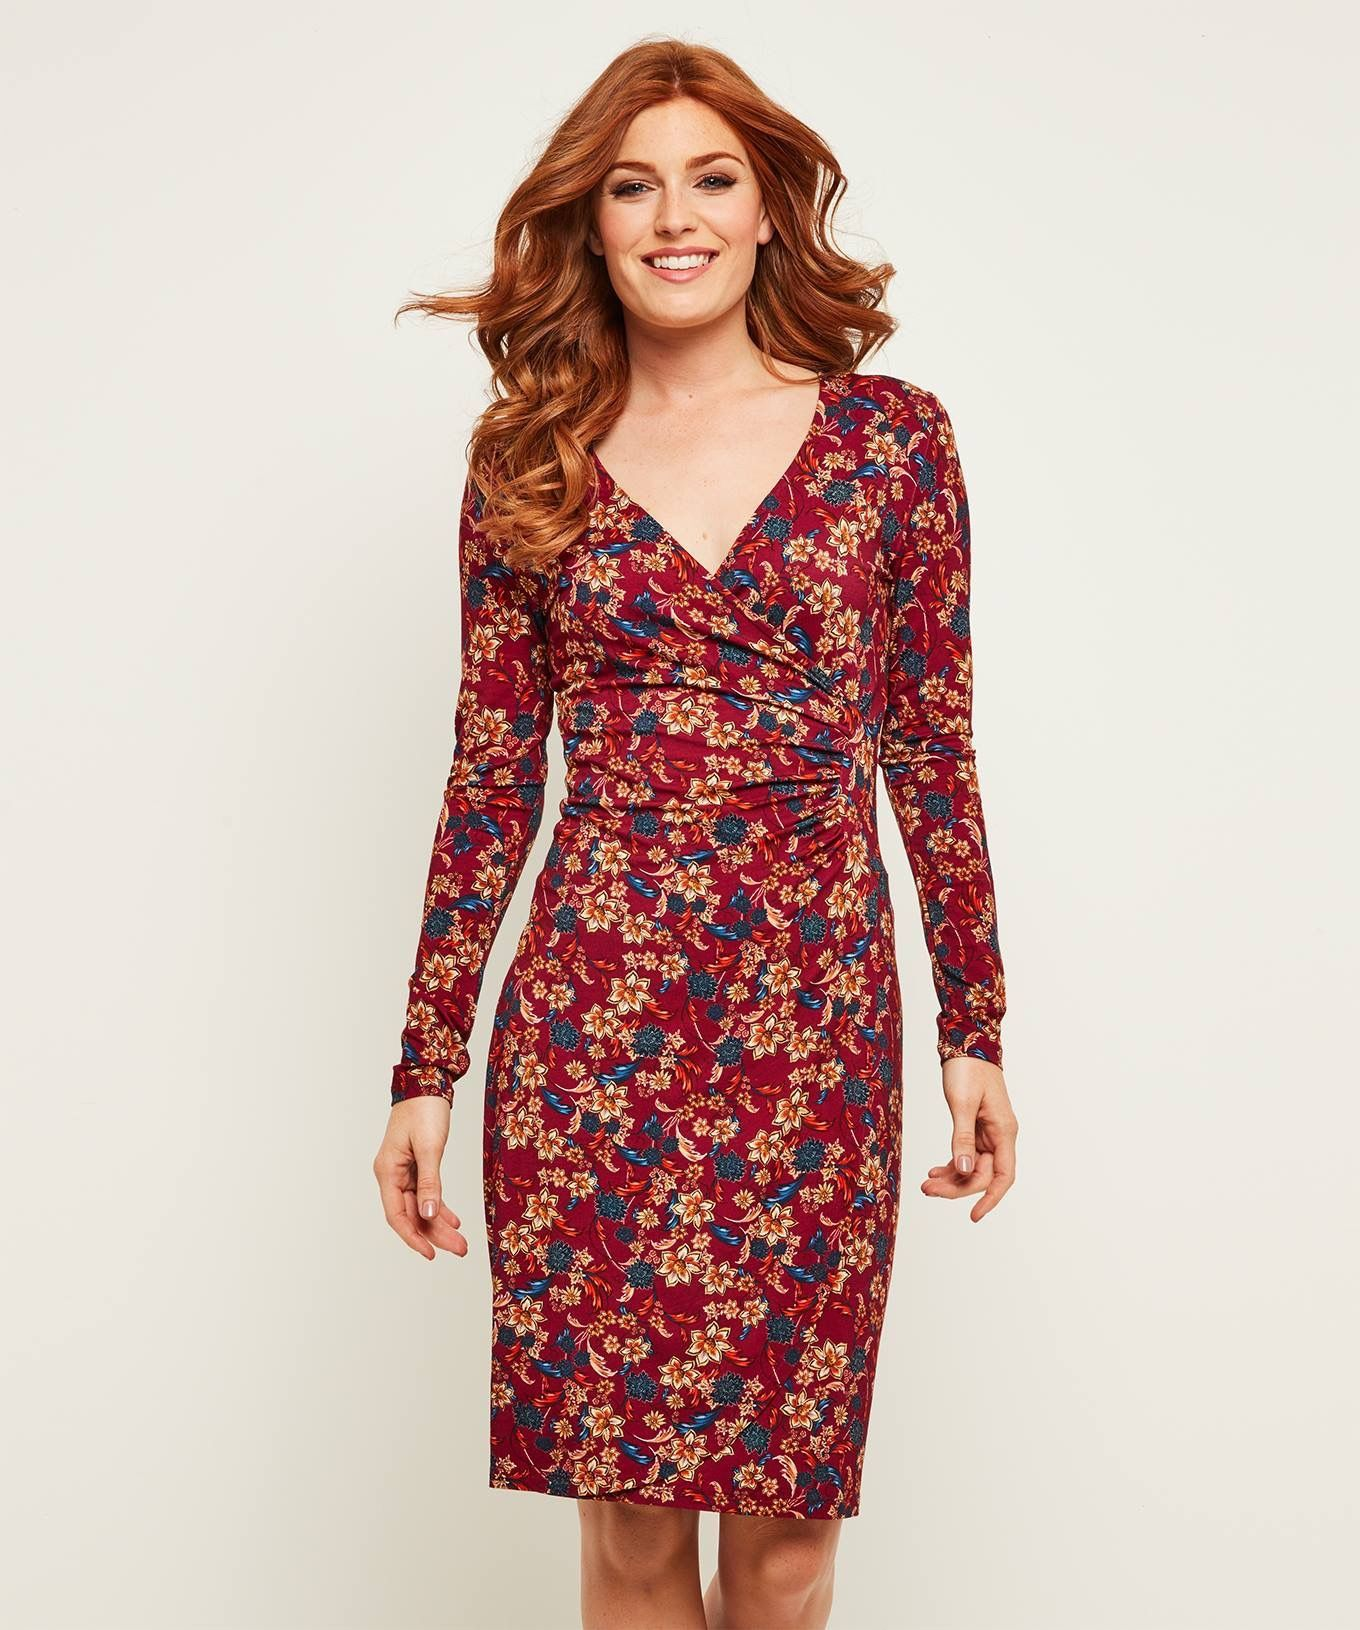 3a594bd5748 ... Dress Our best-selling dress is back in a rich and beautiful floral  print. With flattering waist gathering and a mock wrap design